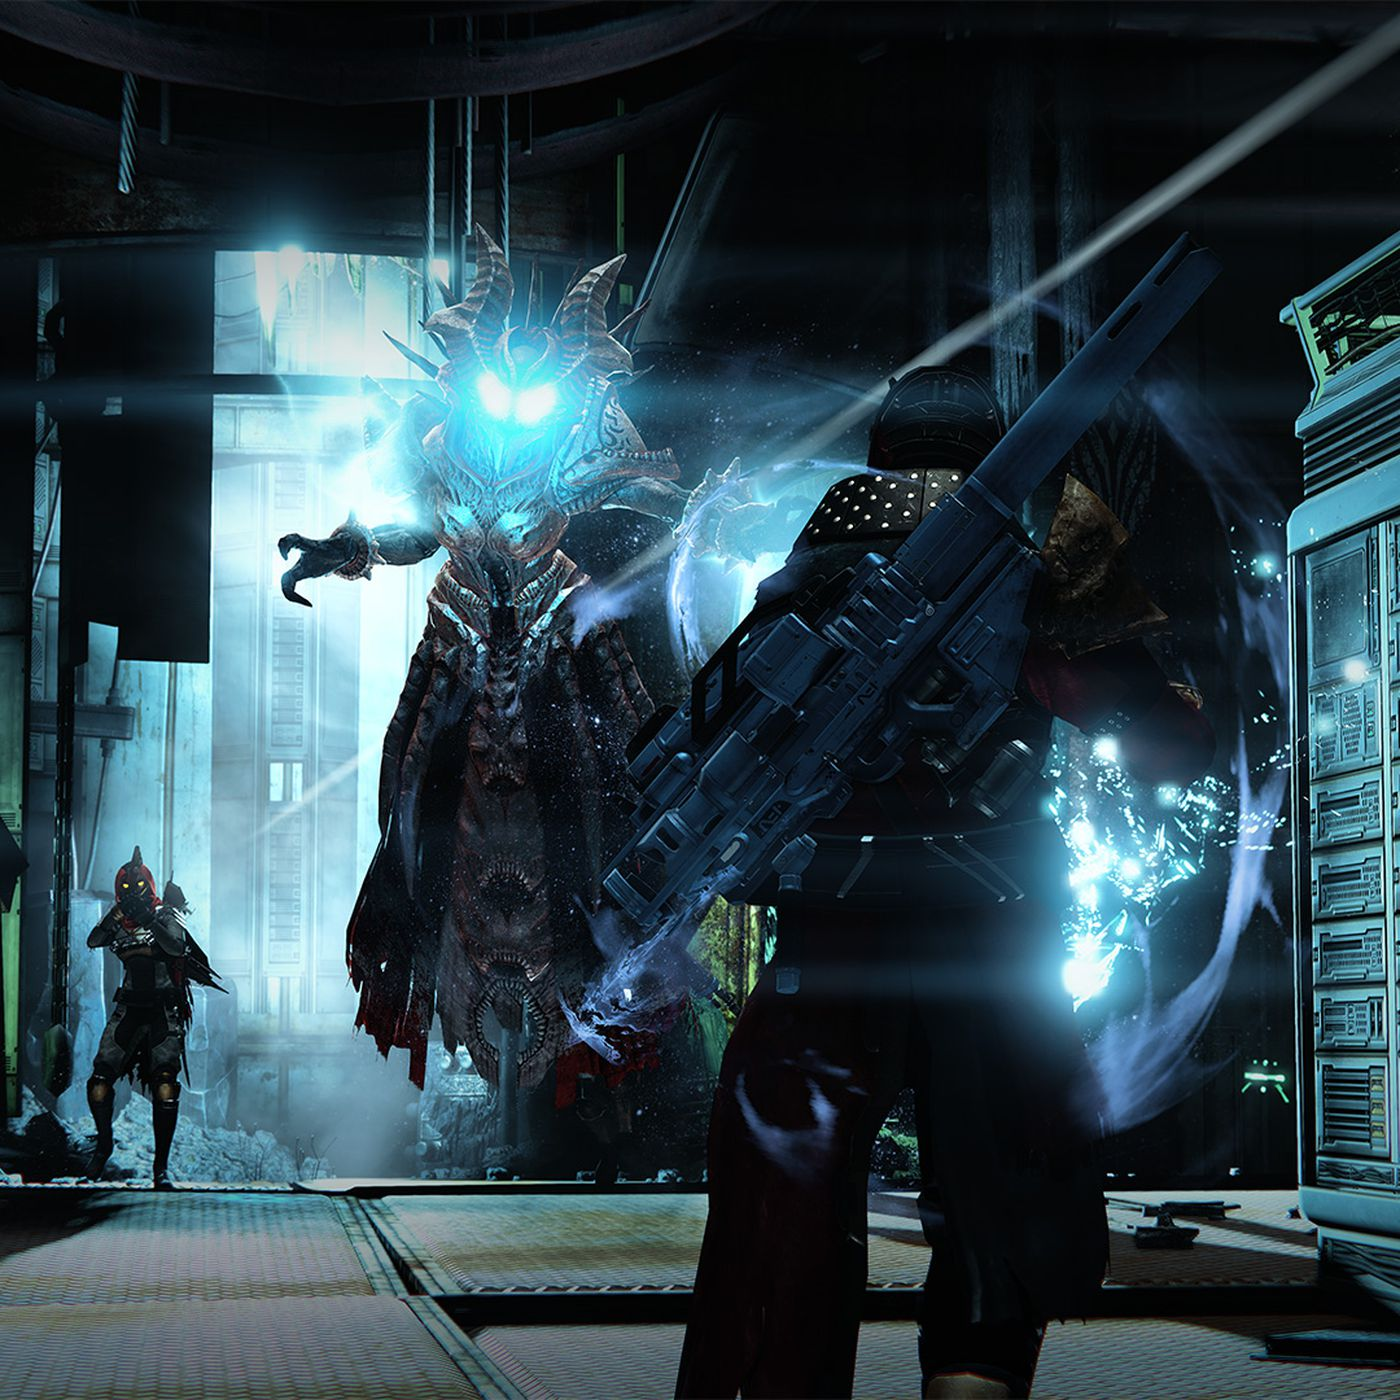 Destiny's Dark Below expansion punishes the game's most